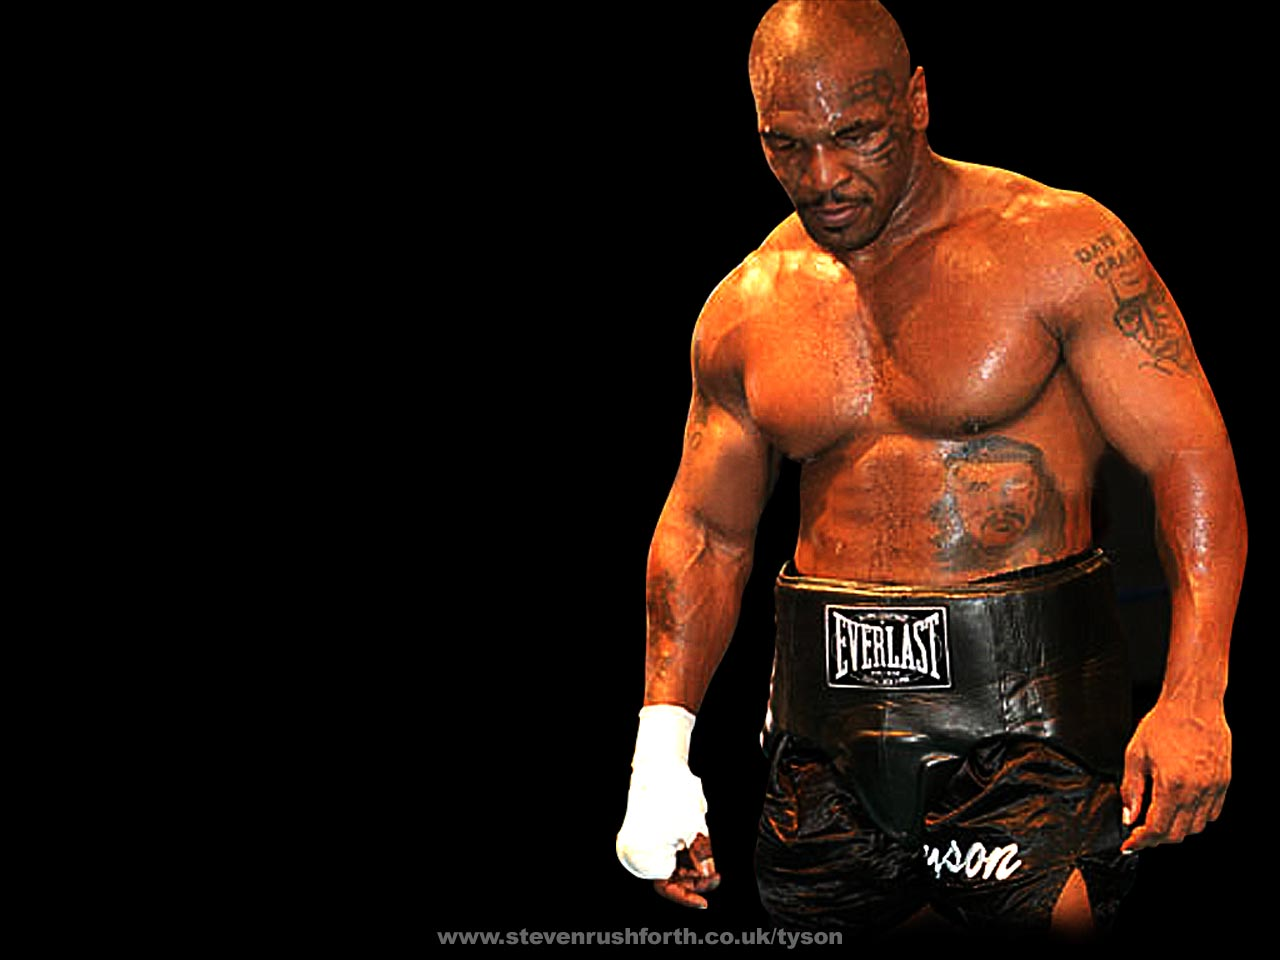 1280x960 - Mike Tyson Wallpapers 27